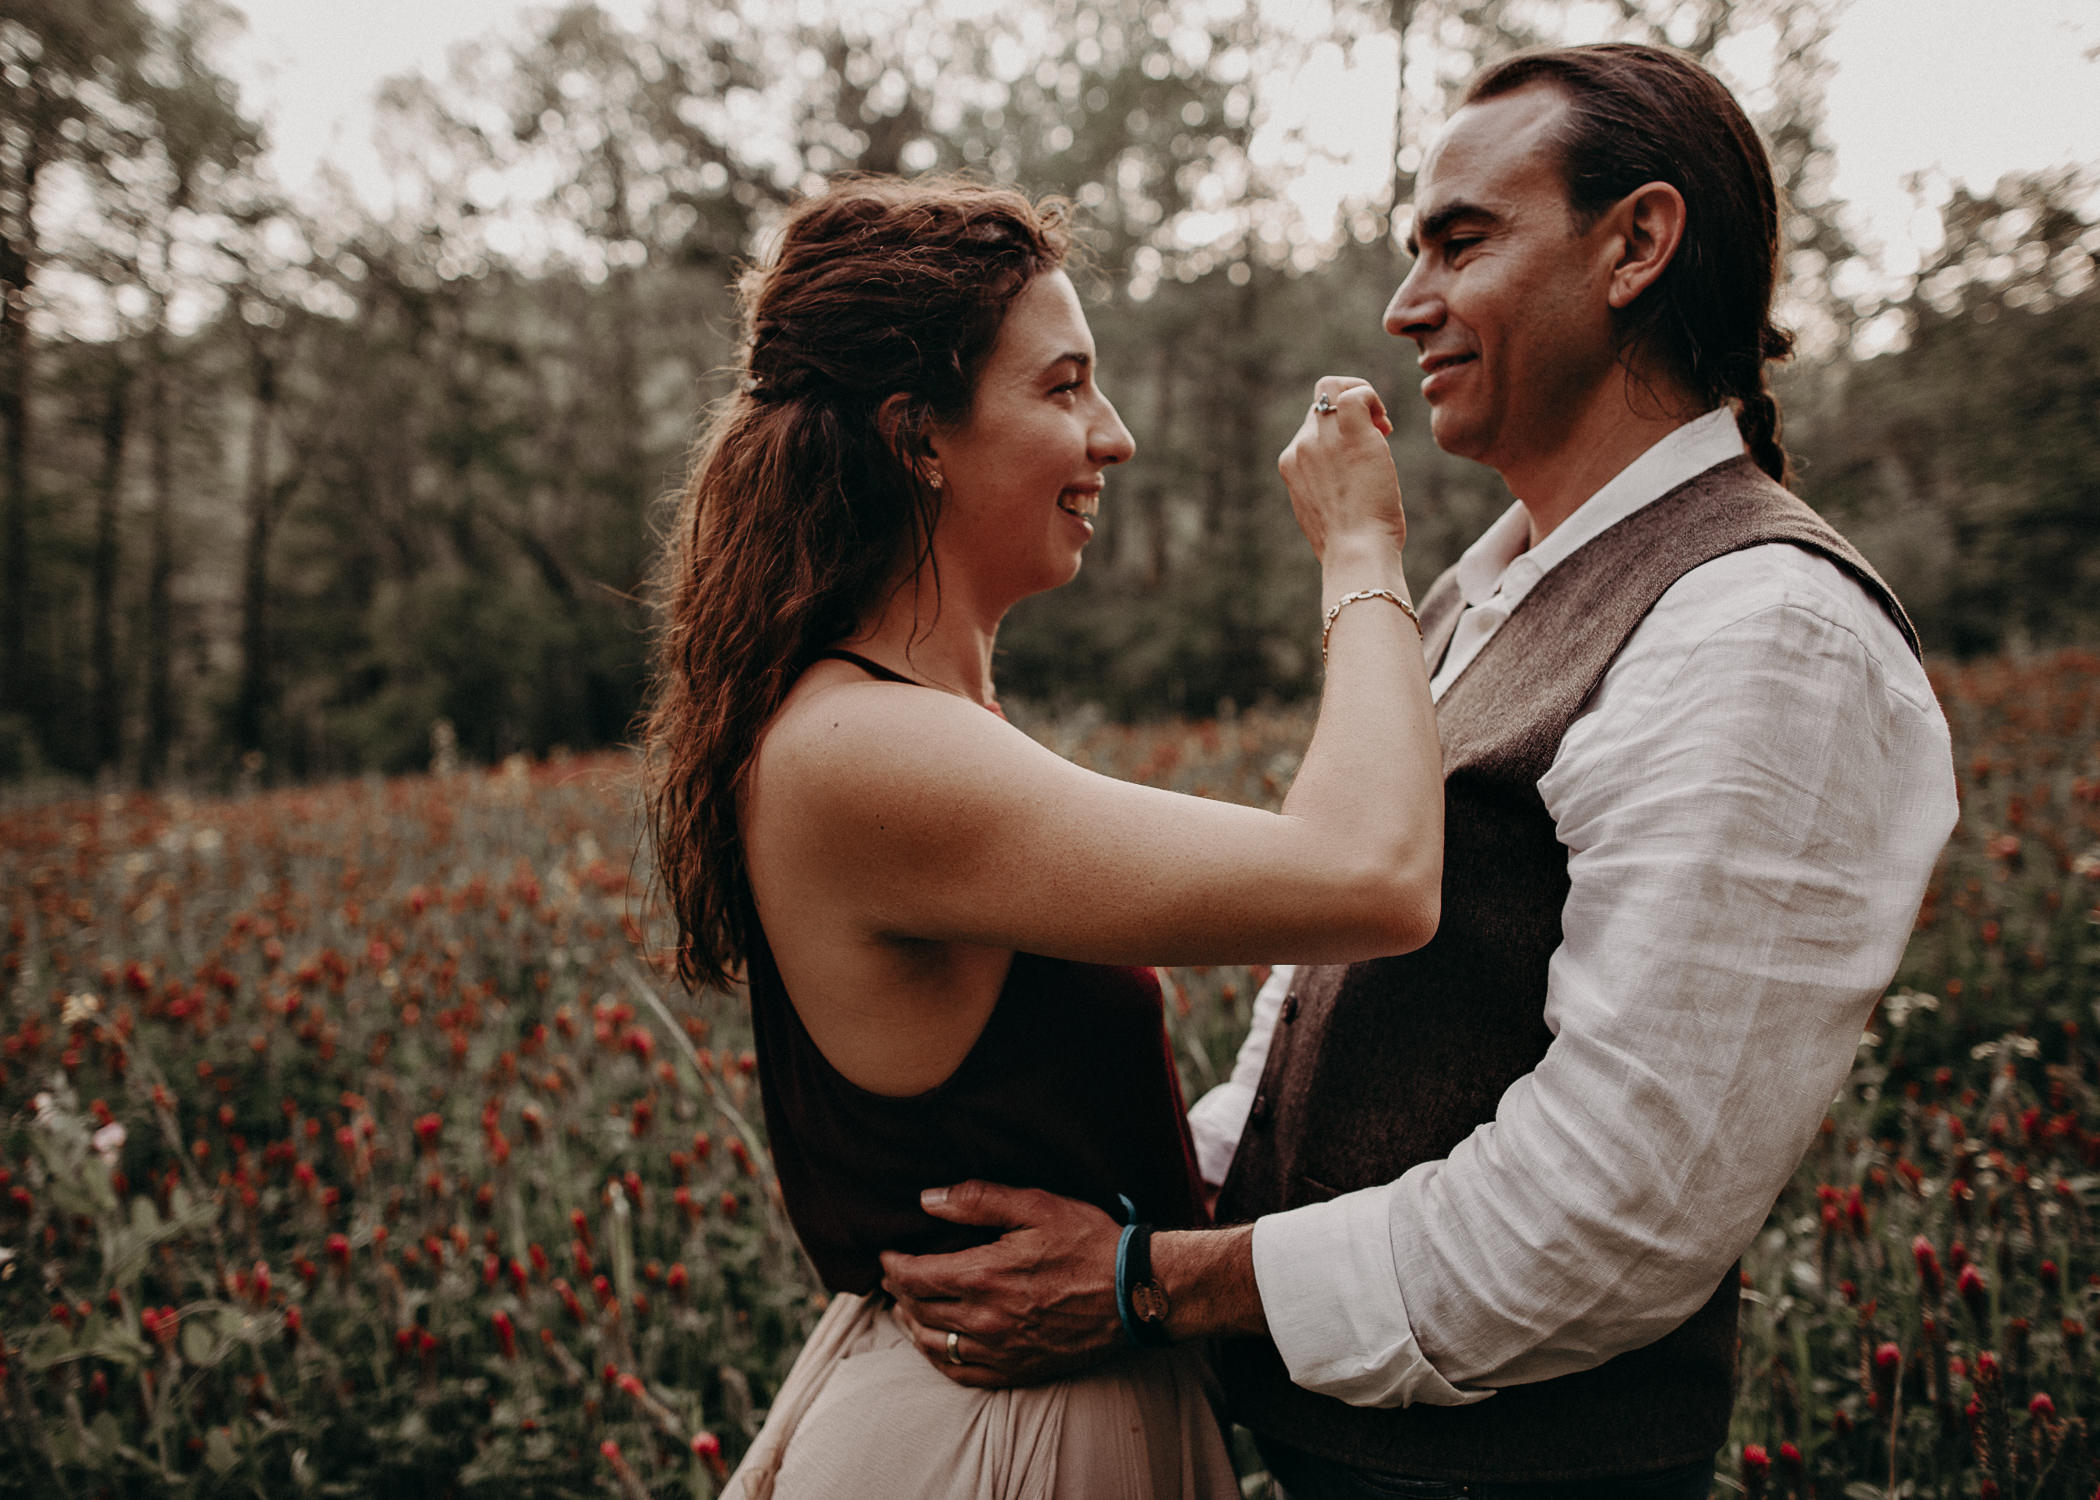 82- Forest wedding boho enchanched fairytale wedding atlanta - ga , intimate, elopement, nature, greens, good vibes. Aline Marin Photography .jpg